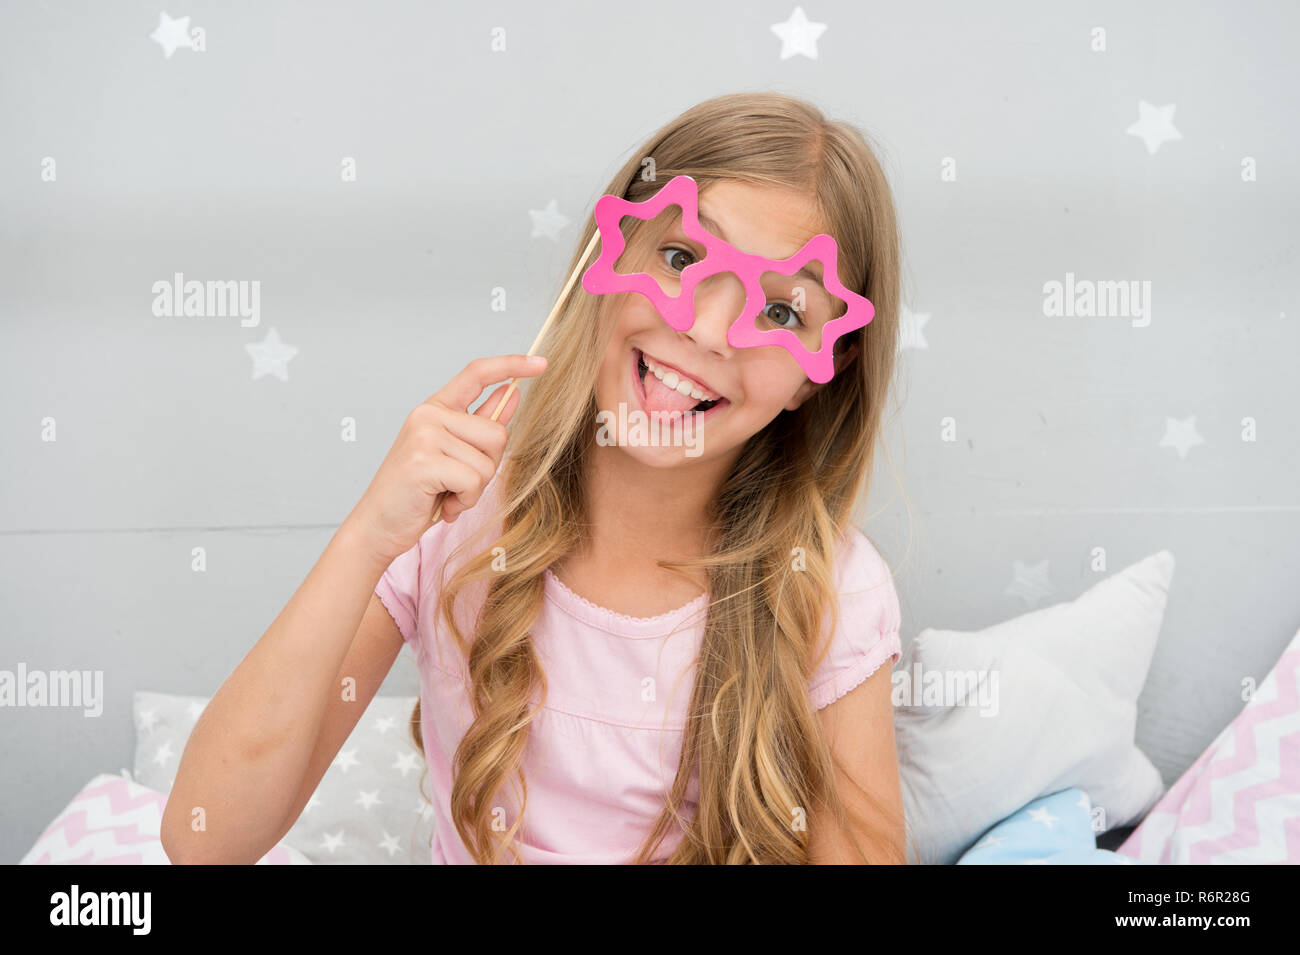 Playful Mood Girl With Long Blonde Curly Hair Posing With Photo